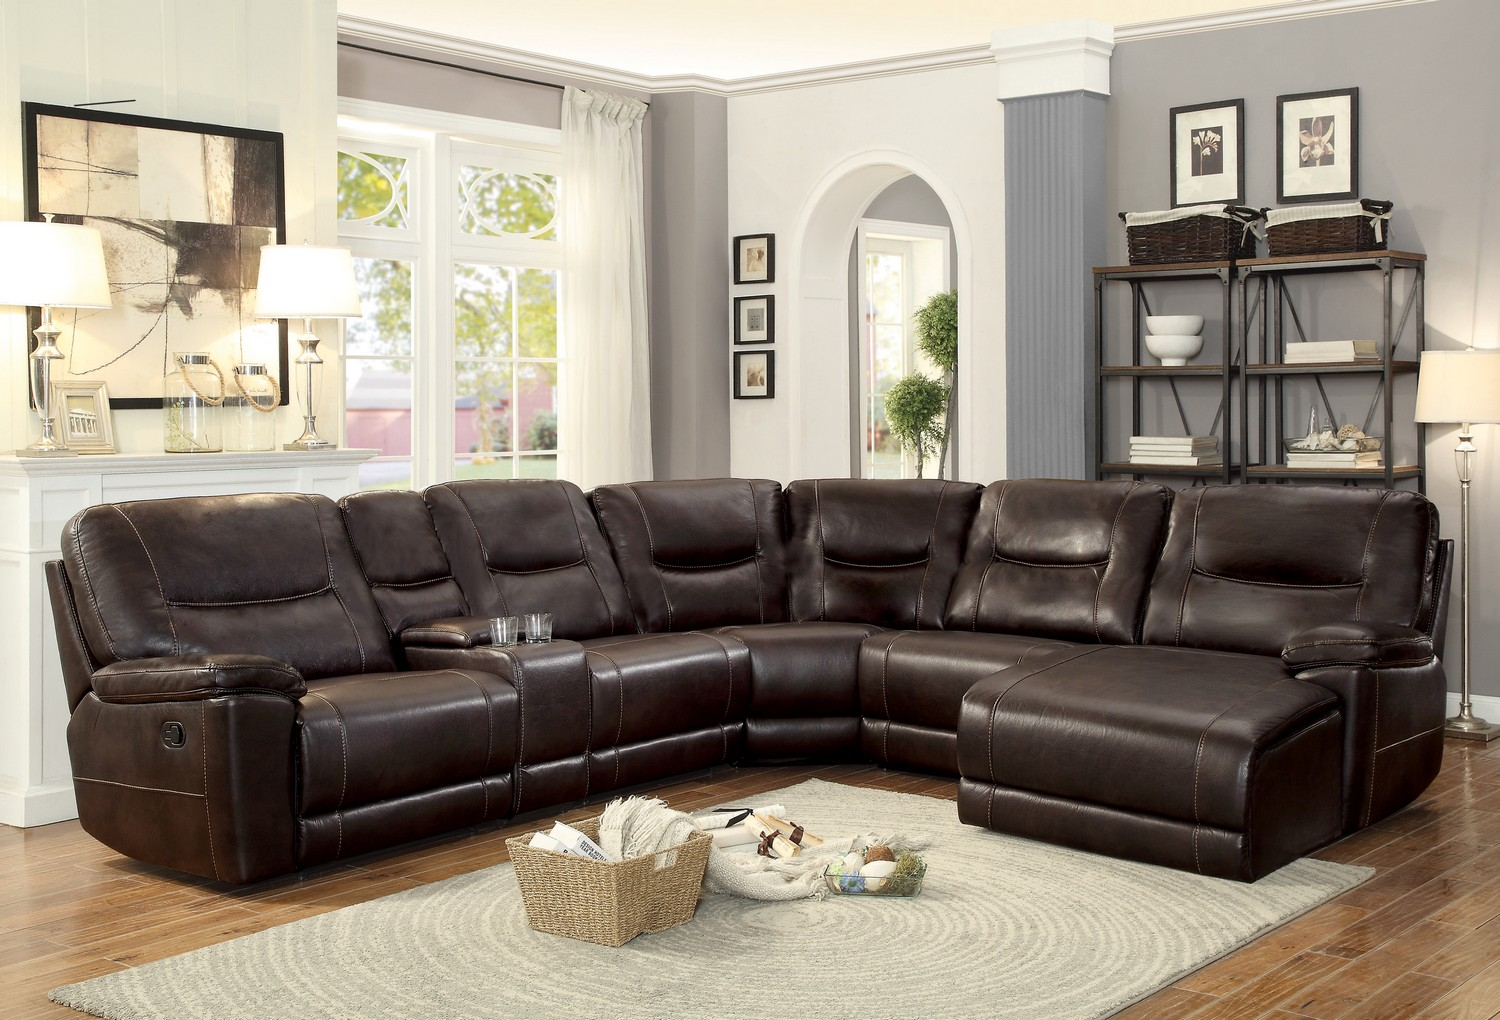 Homelegance Columbus Reclining Sectional Sofa Set C - Breathable Faux Leather - Dark Brown